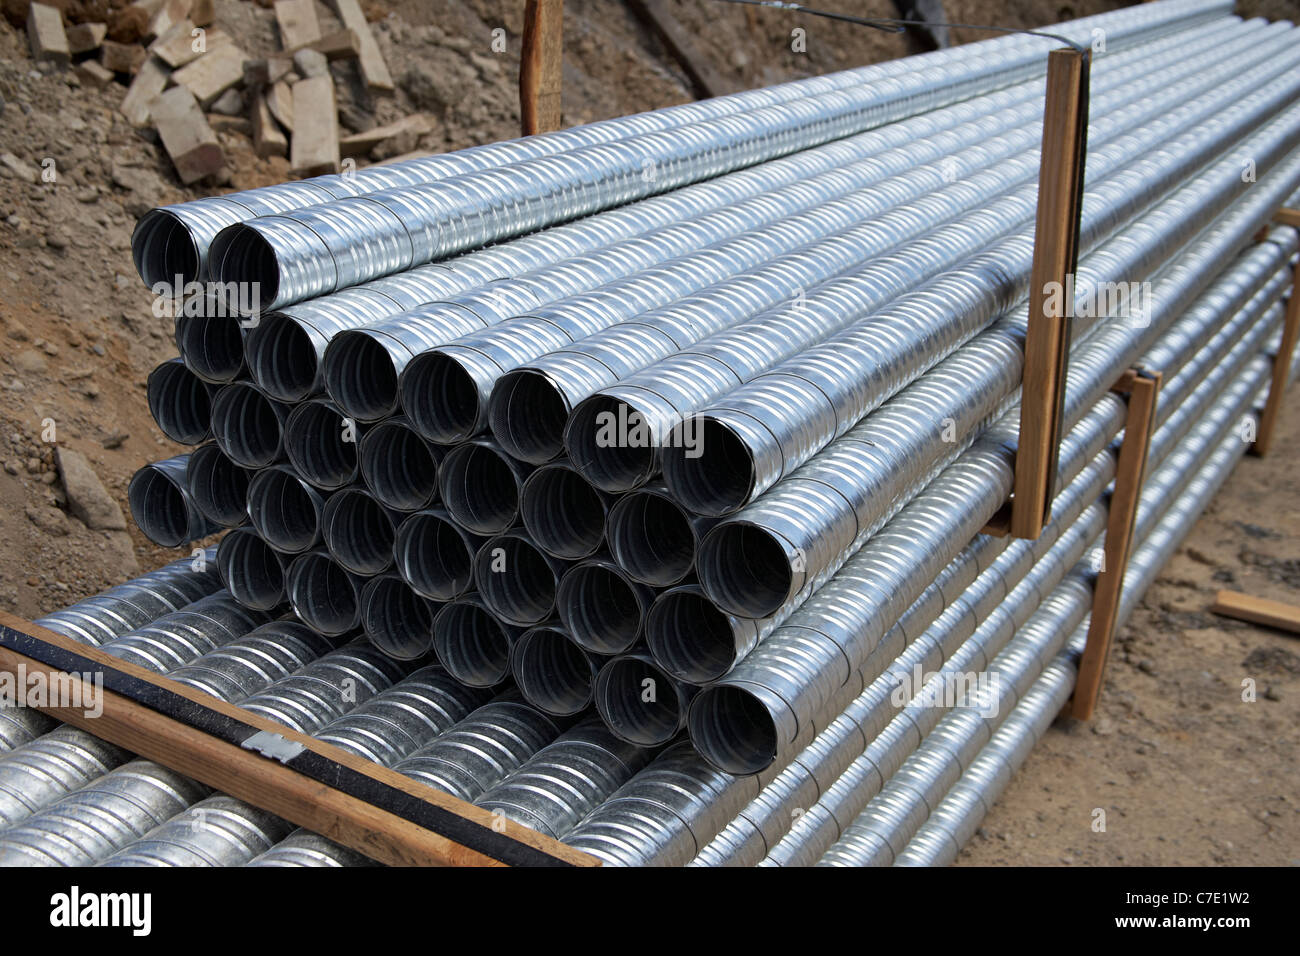 Stack of galvanized pipes at construction site - Stock Image